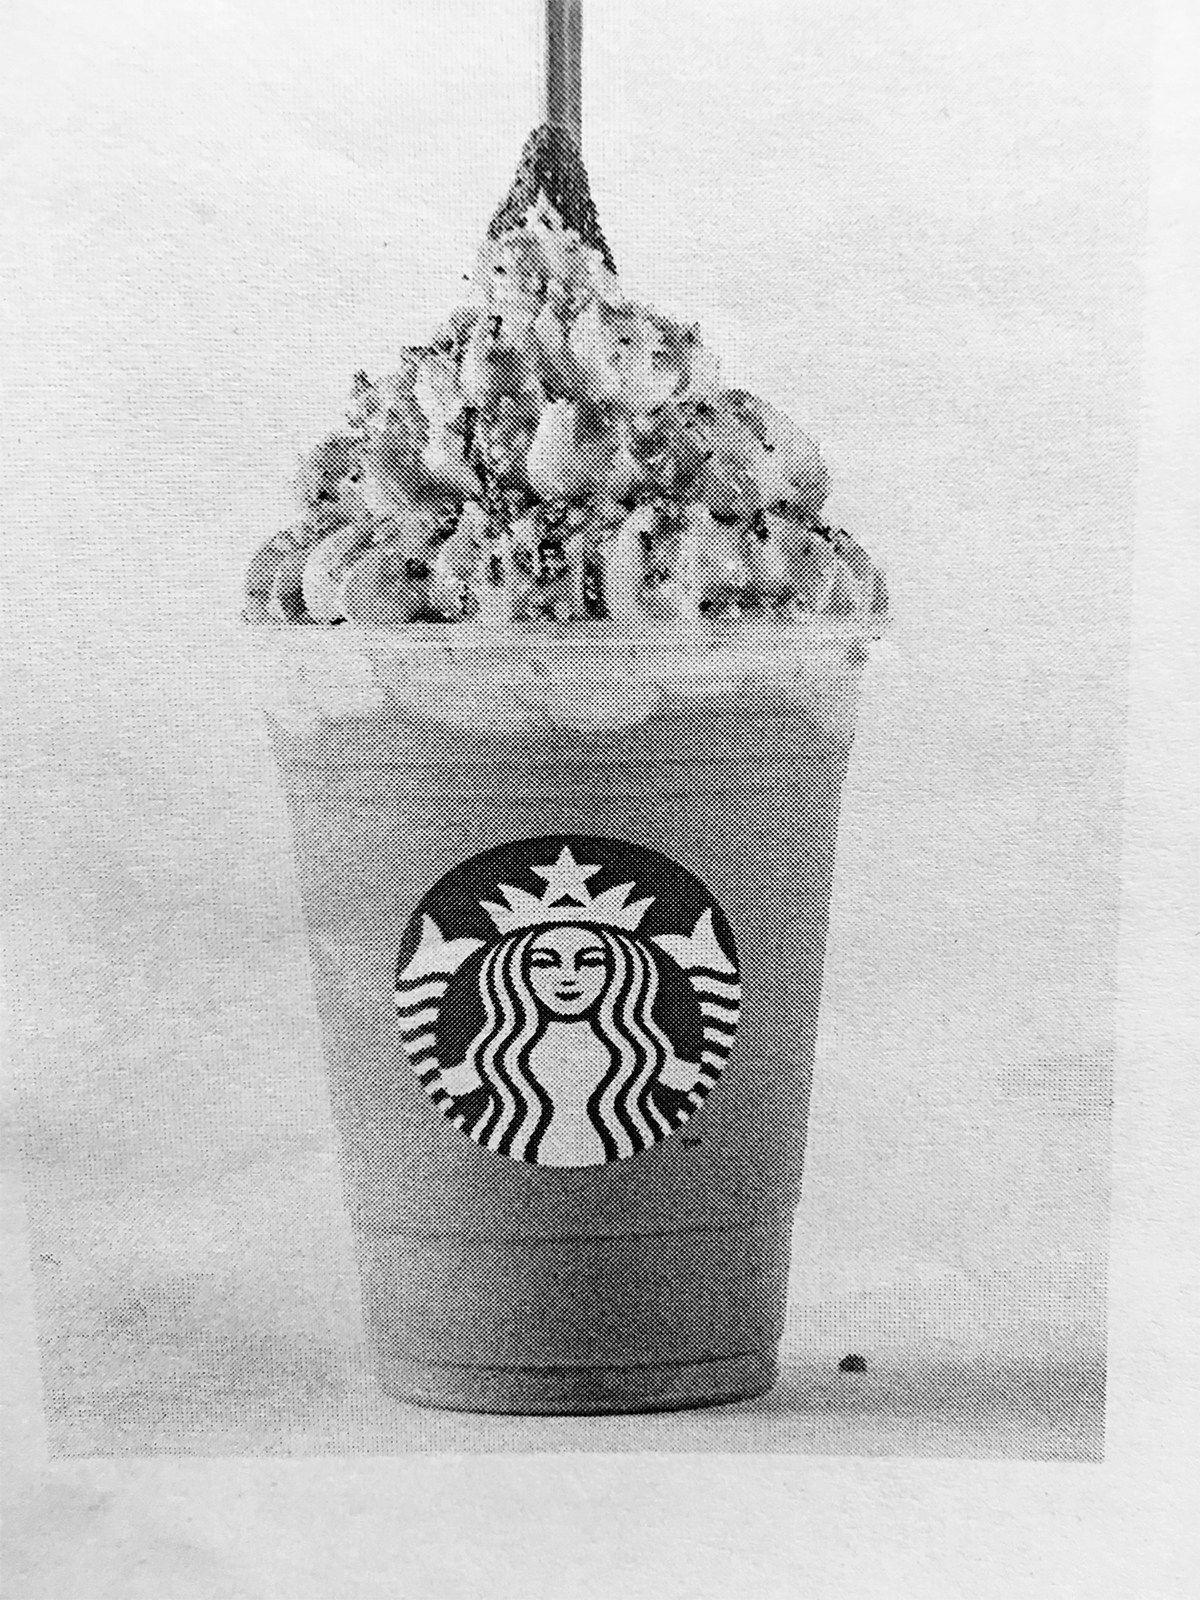 Starbucks Leak New Christmas Tree Frappuccino Available